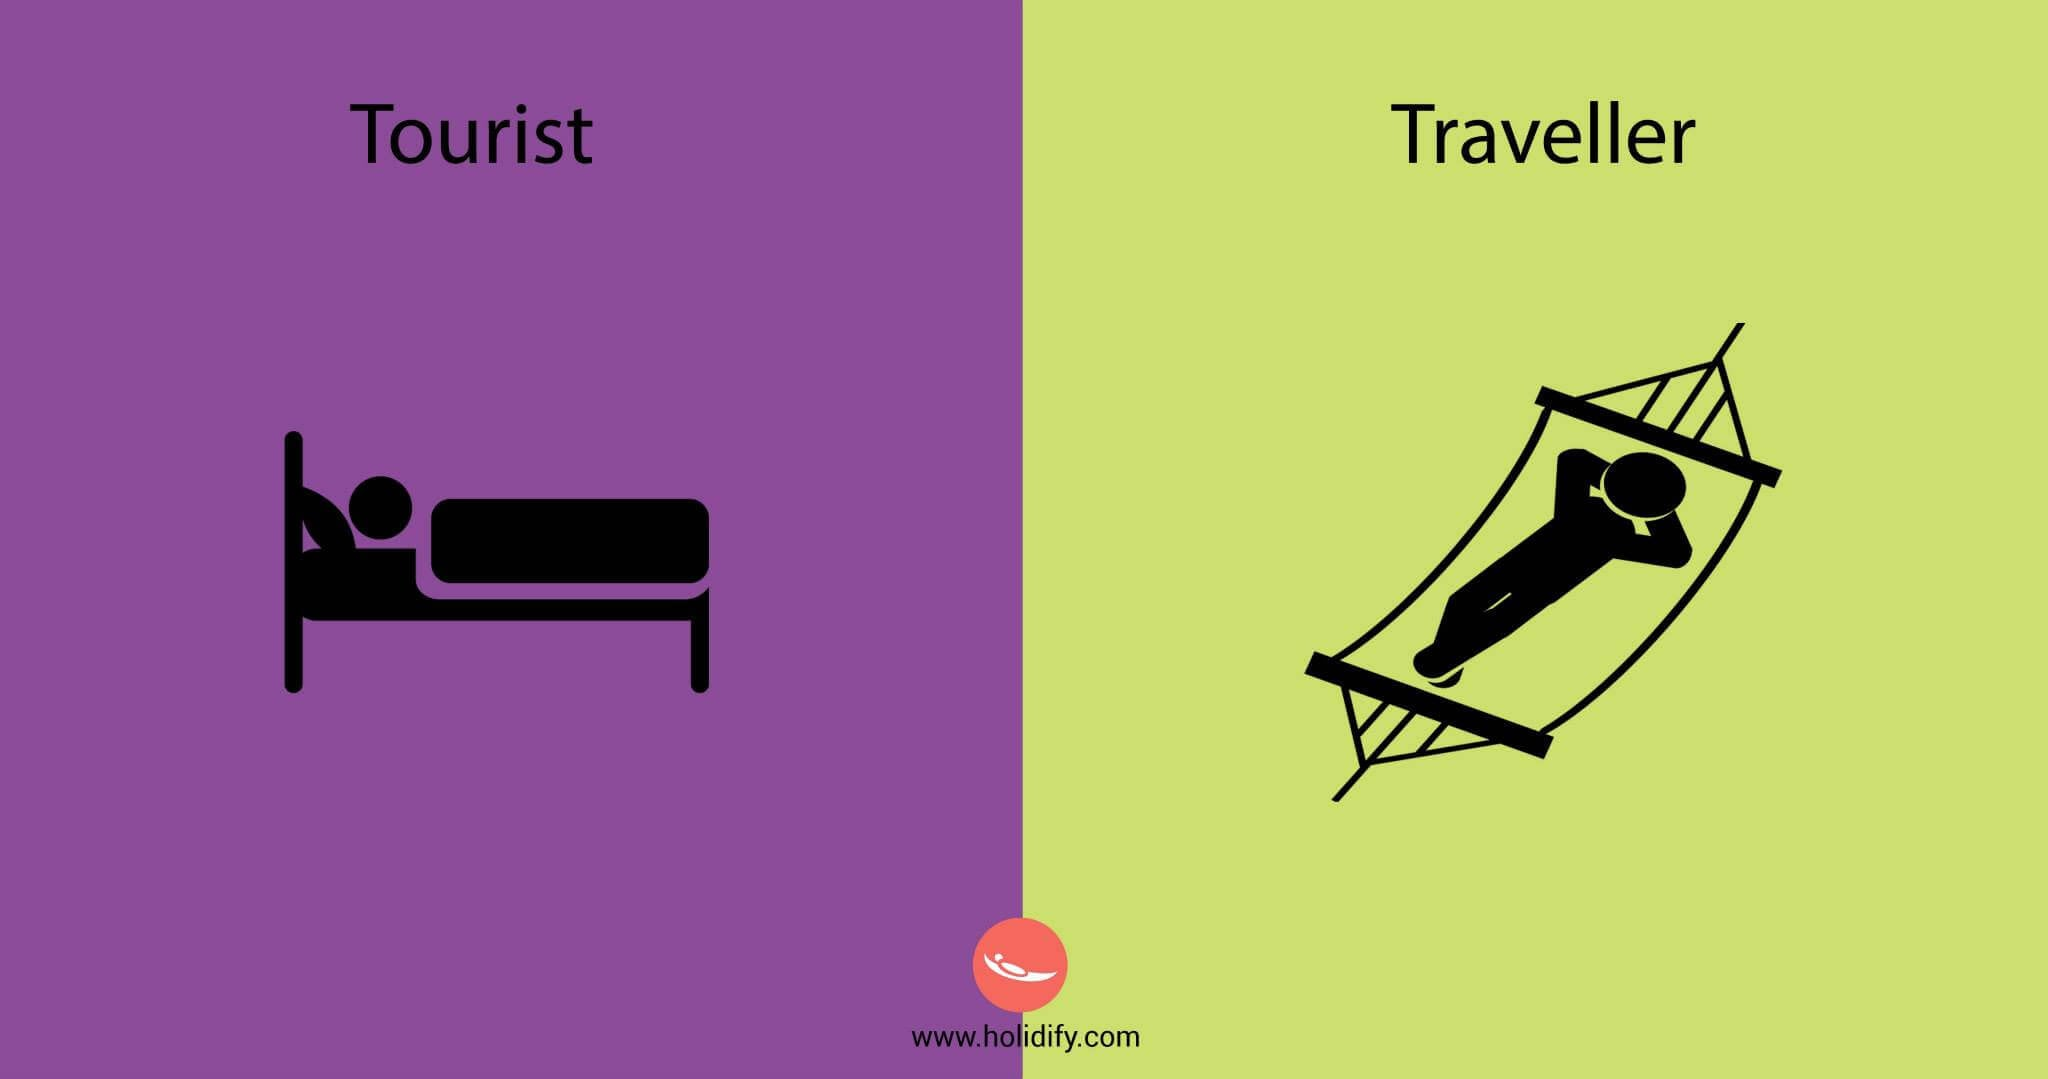 tourist-vs-traveller-freeyork-8